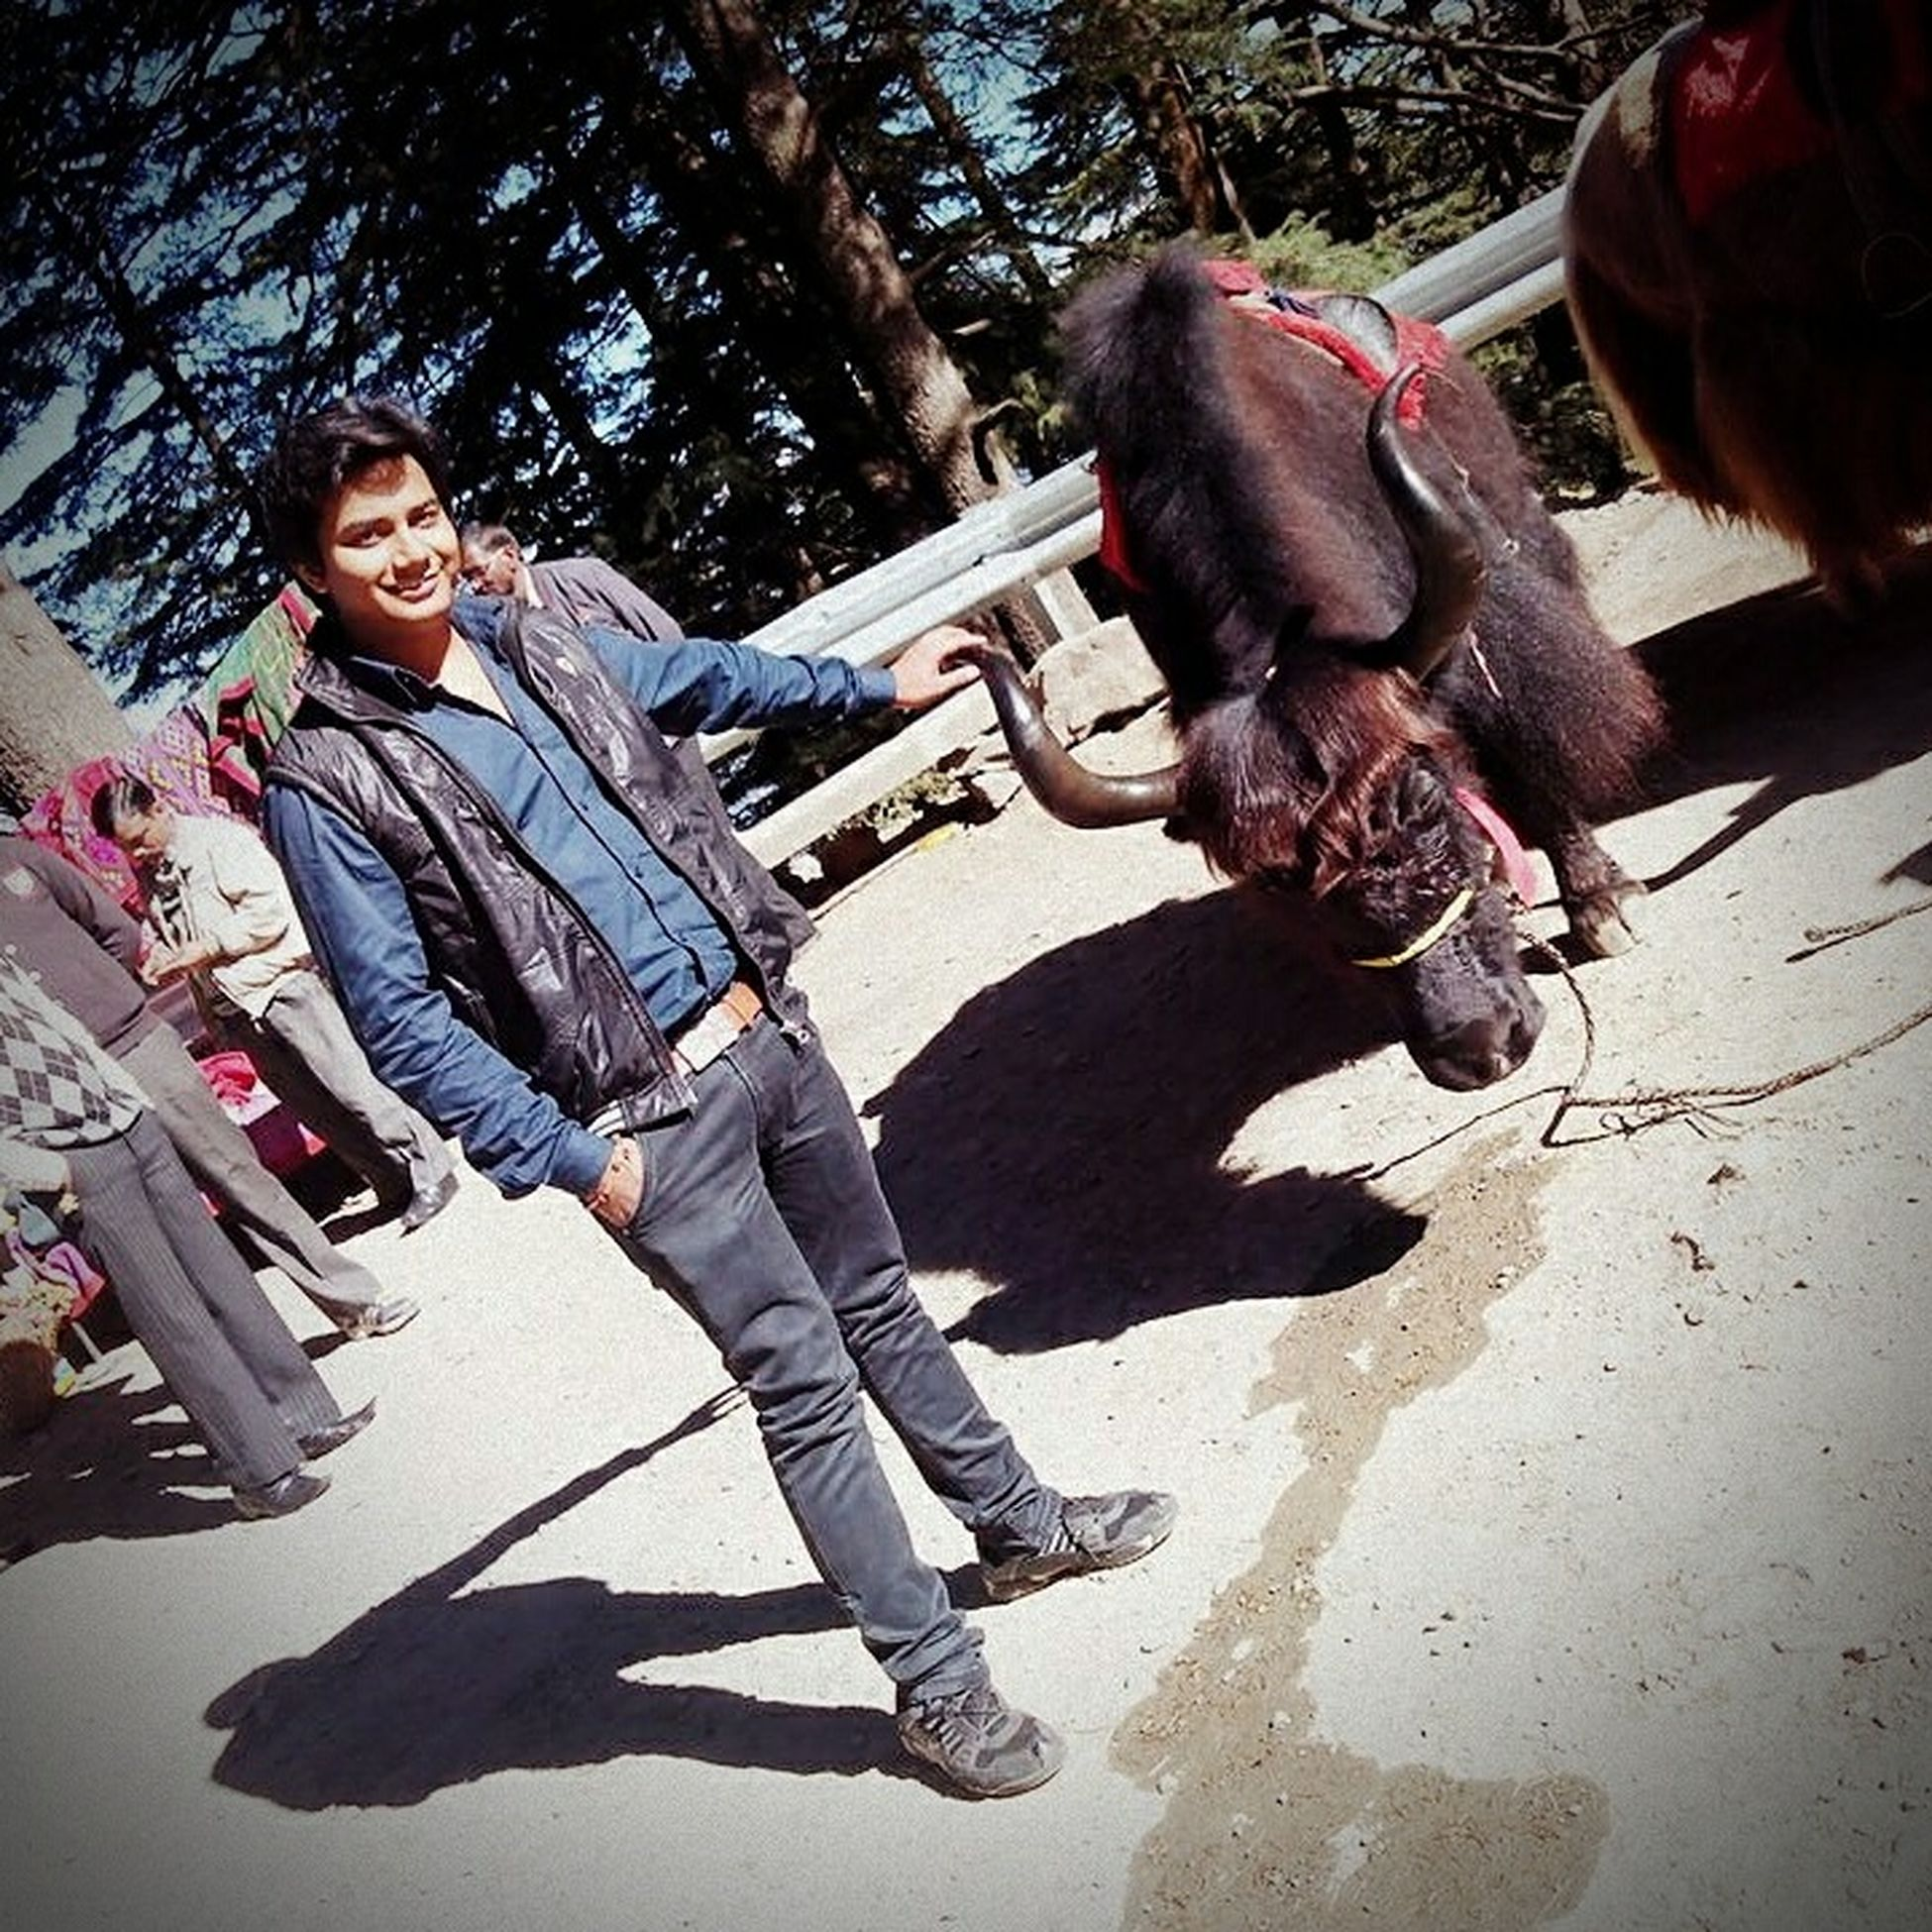 Shadow Sunlight Lifestyles Togetherness Full Length Well-dressed Outdoors Yalknowwhattimeitis Manali India Shadow Sunlight Casual Clothing Lifestyles Togetherness Full Length Leisure Activity Person Bonding Tree Young Adult Day Outdoors Well-dressed